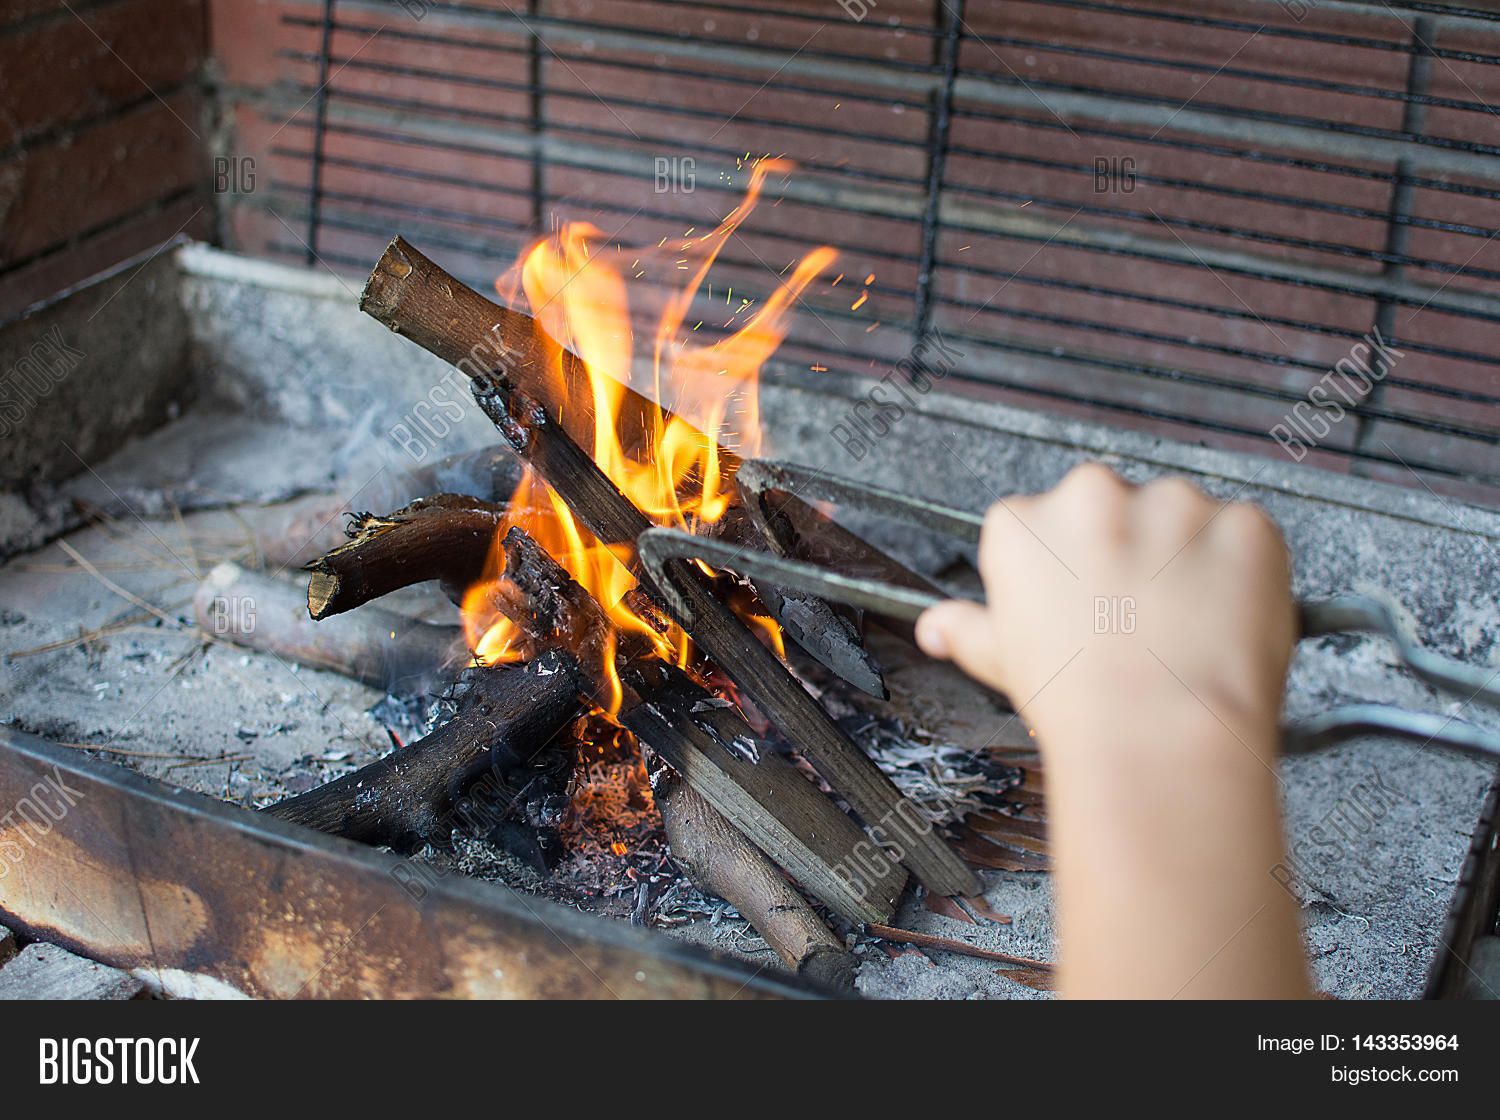 Starting Fire Charcoal Image Photo Free Trial Bigstock